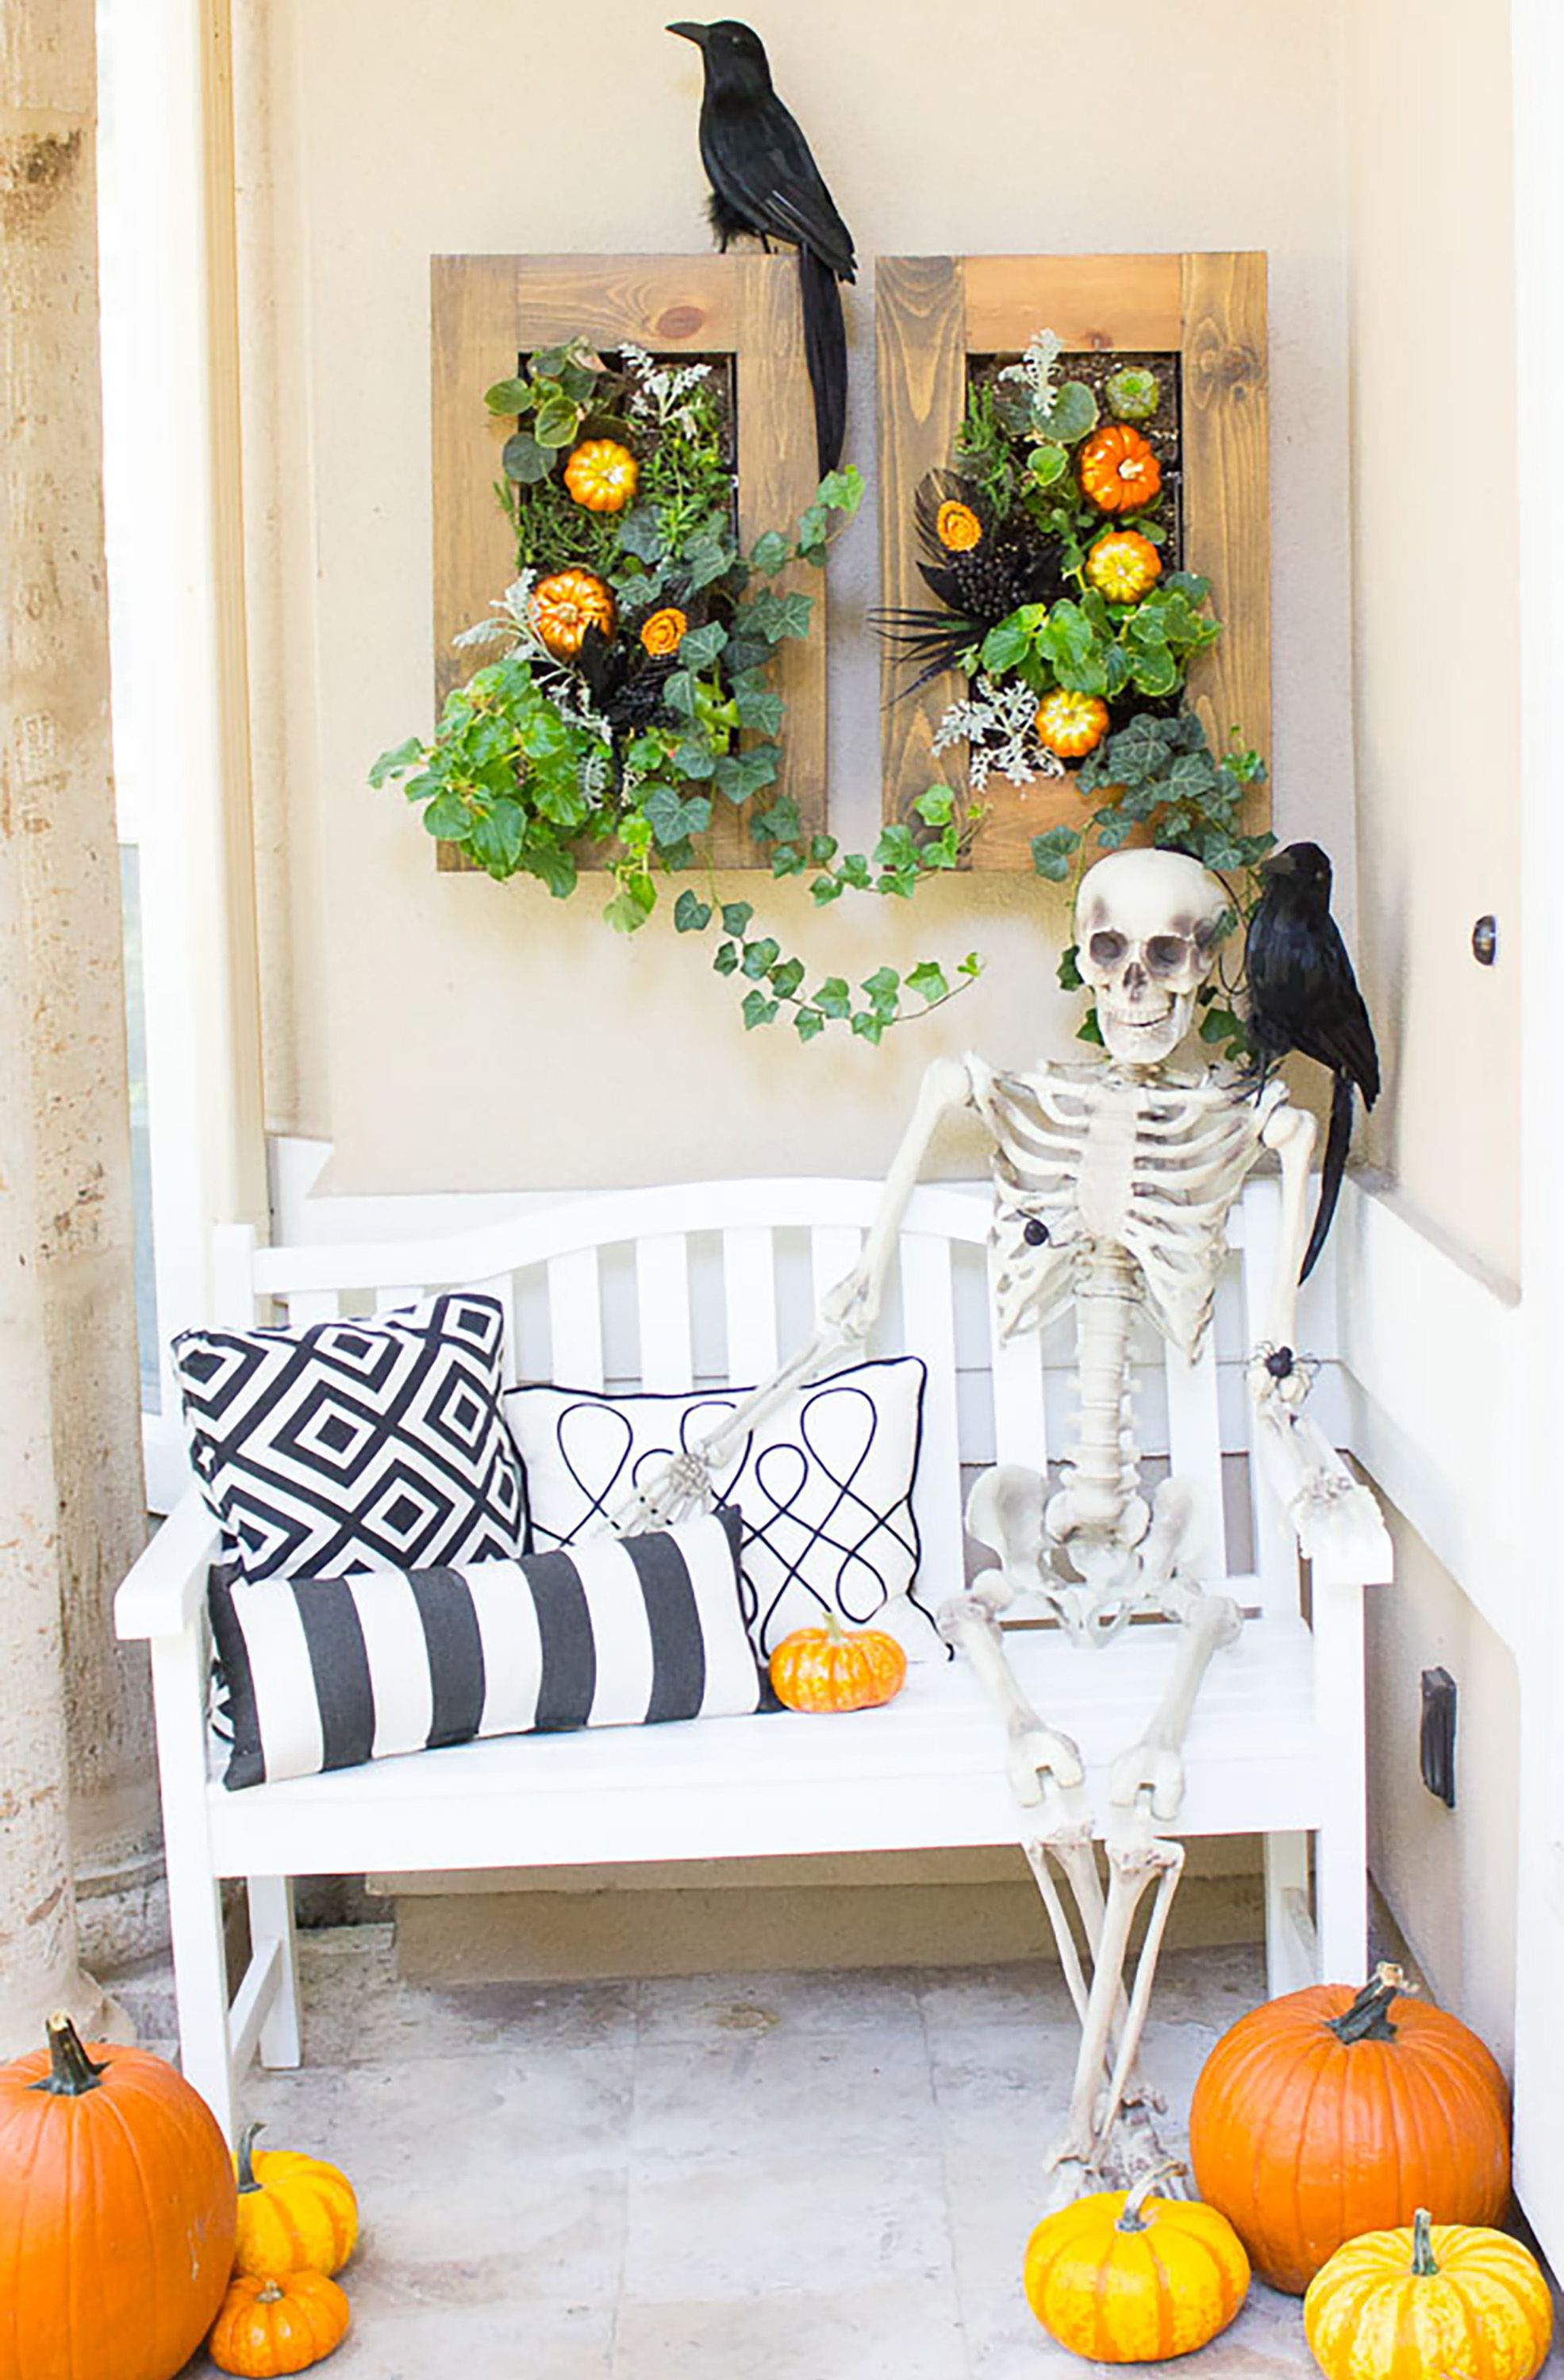 50 Easy DIY Halloween Decoration Ideas - Homemade Halloween Decor ...